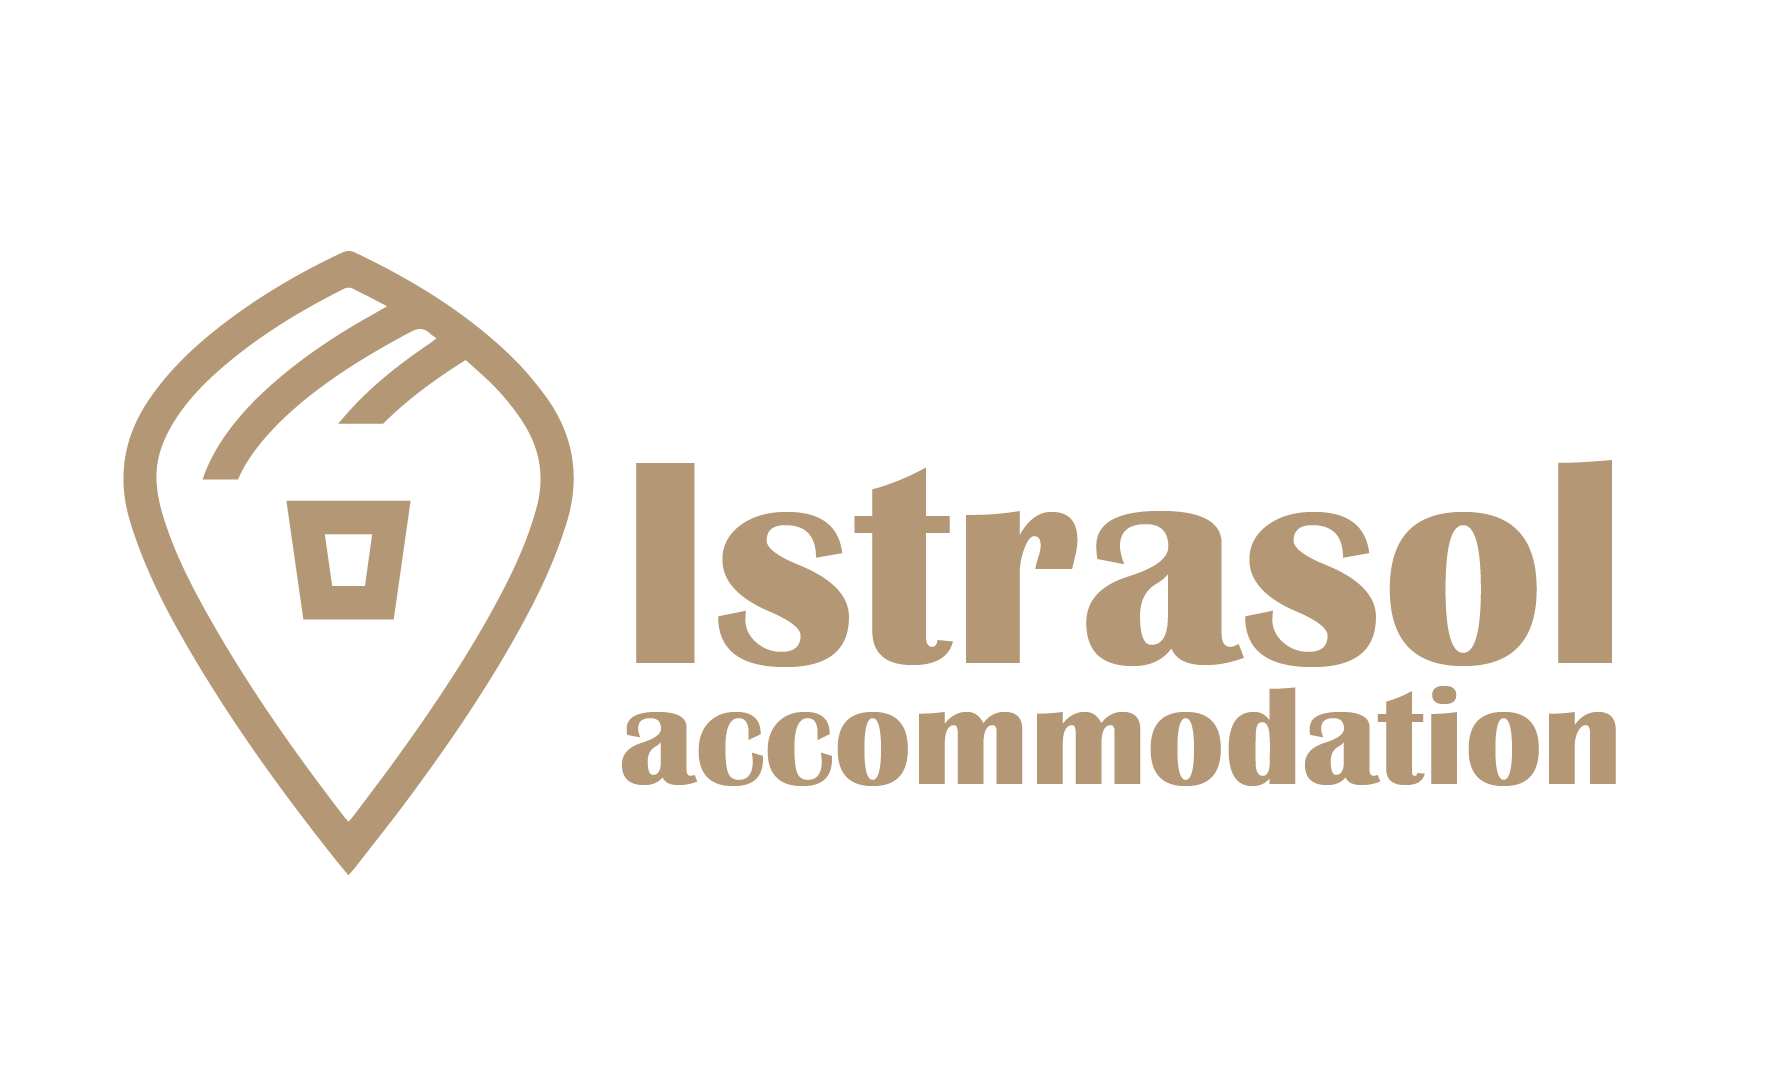 Istrasol Accommodation